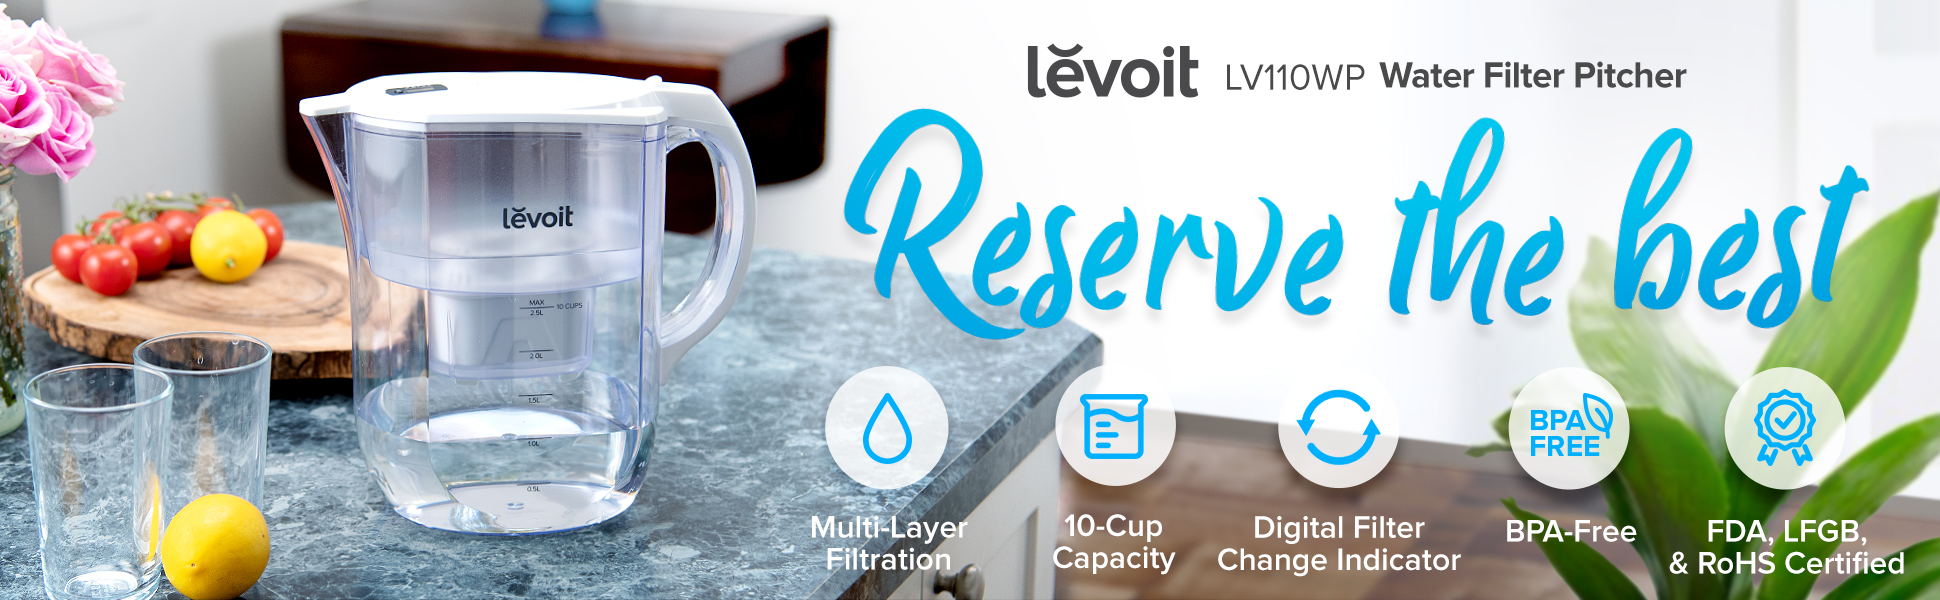 LEVOIT 10 Cup Water Filter Pitcher Large Purifier with Electronic Filter for